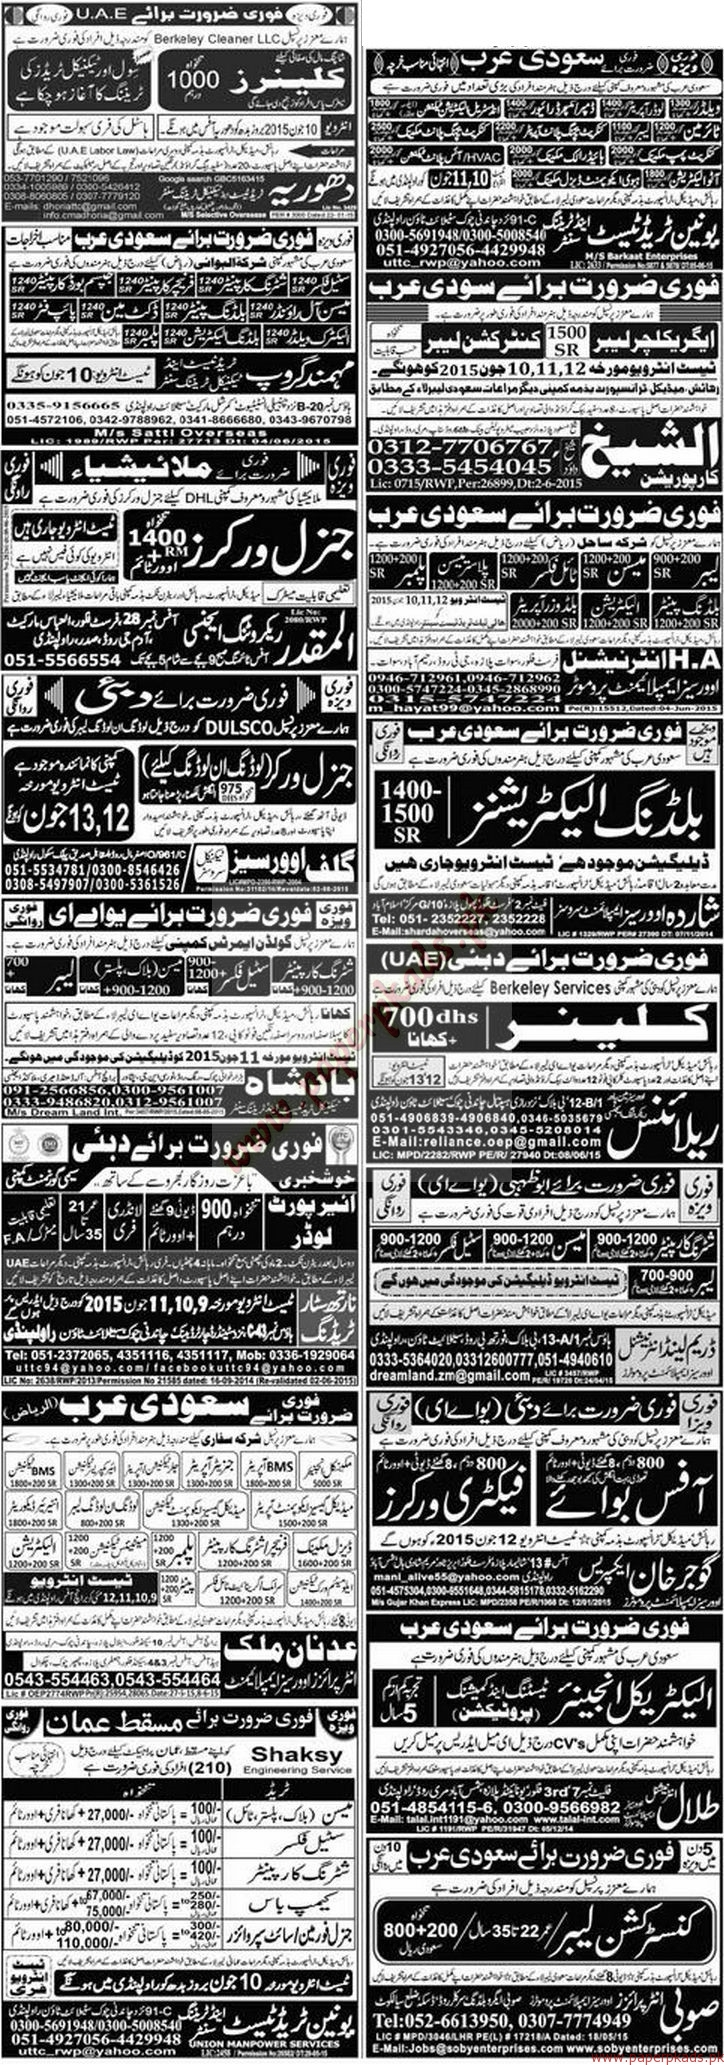 Operators, Weders, Technicians, Mechanics, Agriculture and Construction Labours, Building Carpainters, security Guards and Other Jobs - Express Jobs ads 09 June 2015